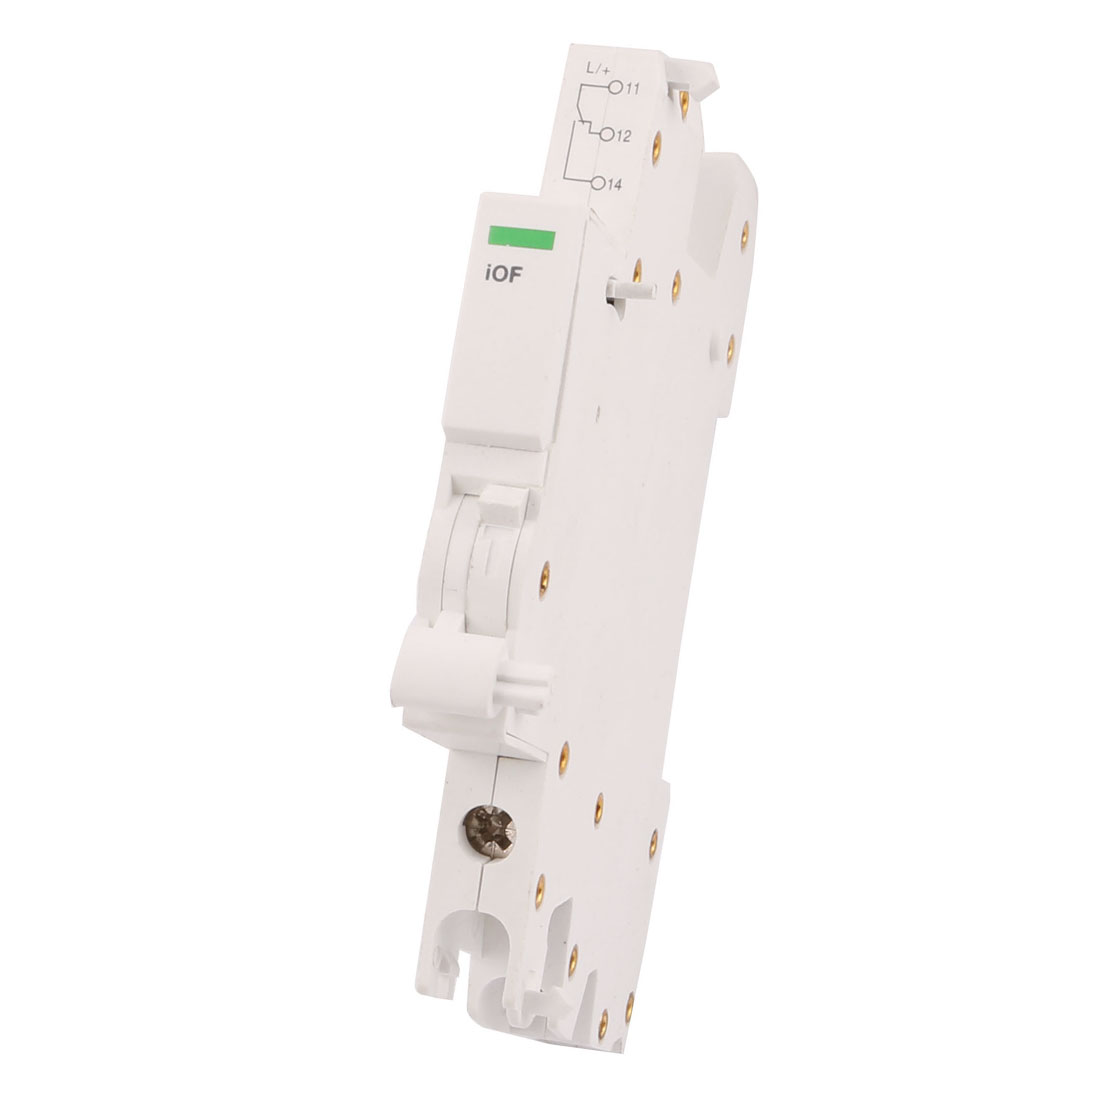 Leakage Protection iOF Auxiliary Switch Miniature Circuit Breaker for IC65 MCB